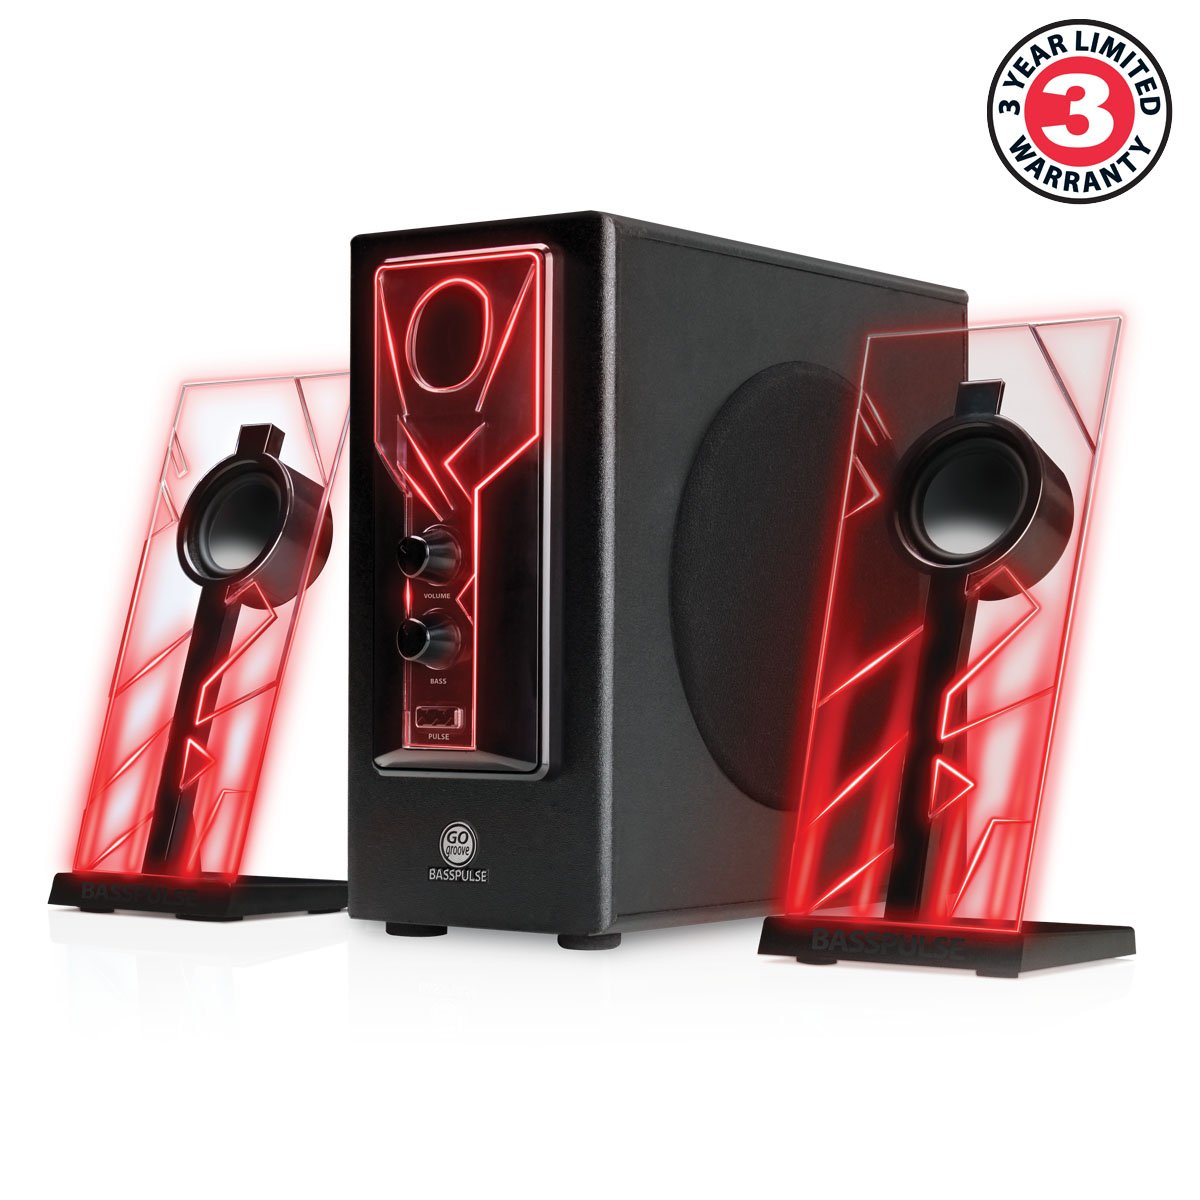 sound system with subwoofer. amazon.com: gogroove basspulse 2.1 computer speakers with red led glow lights and powered subwoofer - gaming speaker system for music on desktop , laptop sound